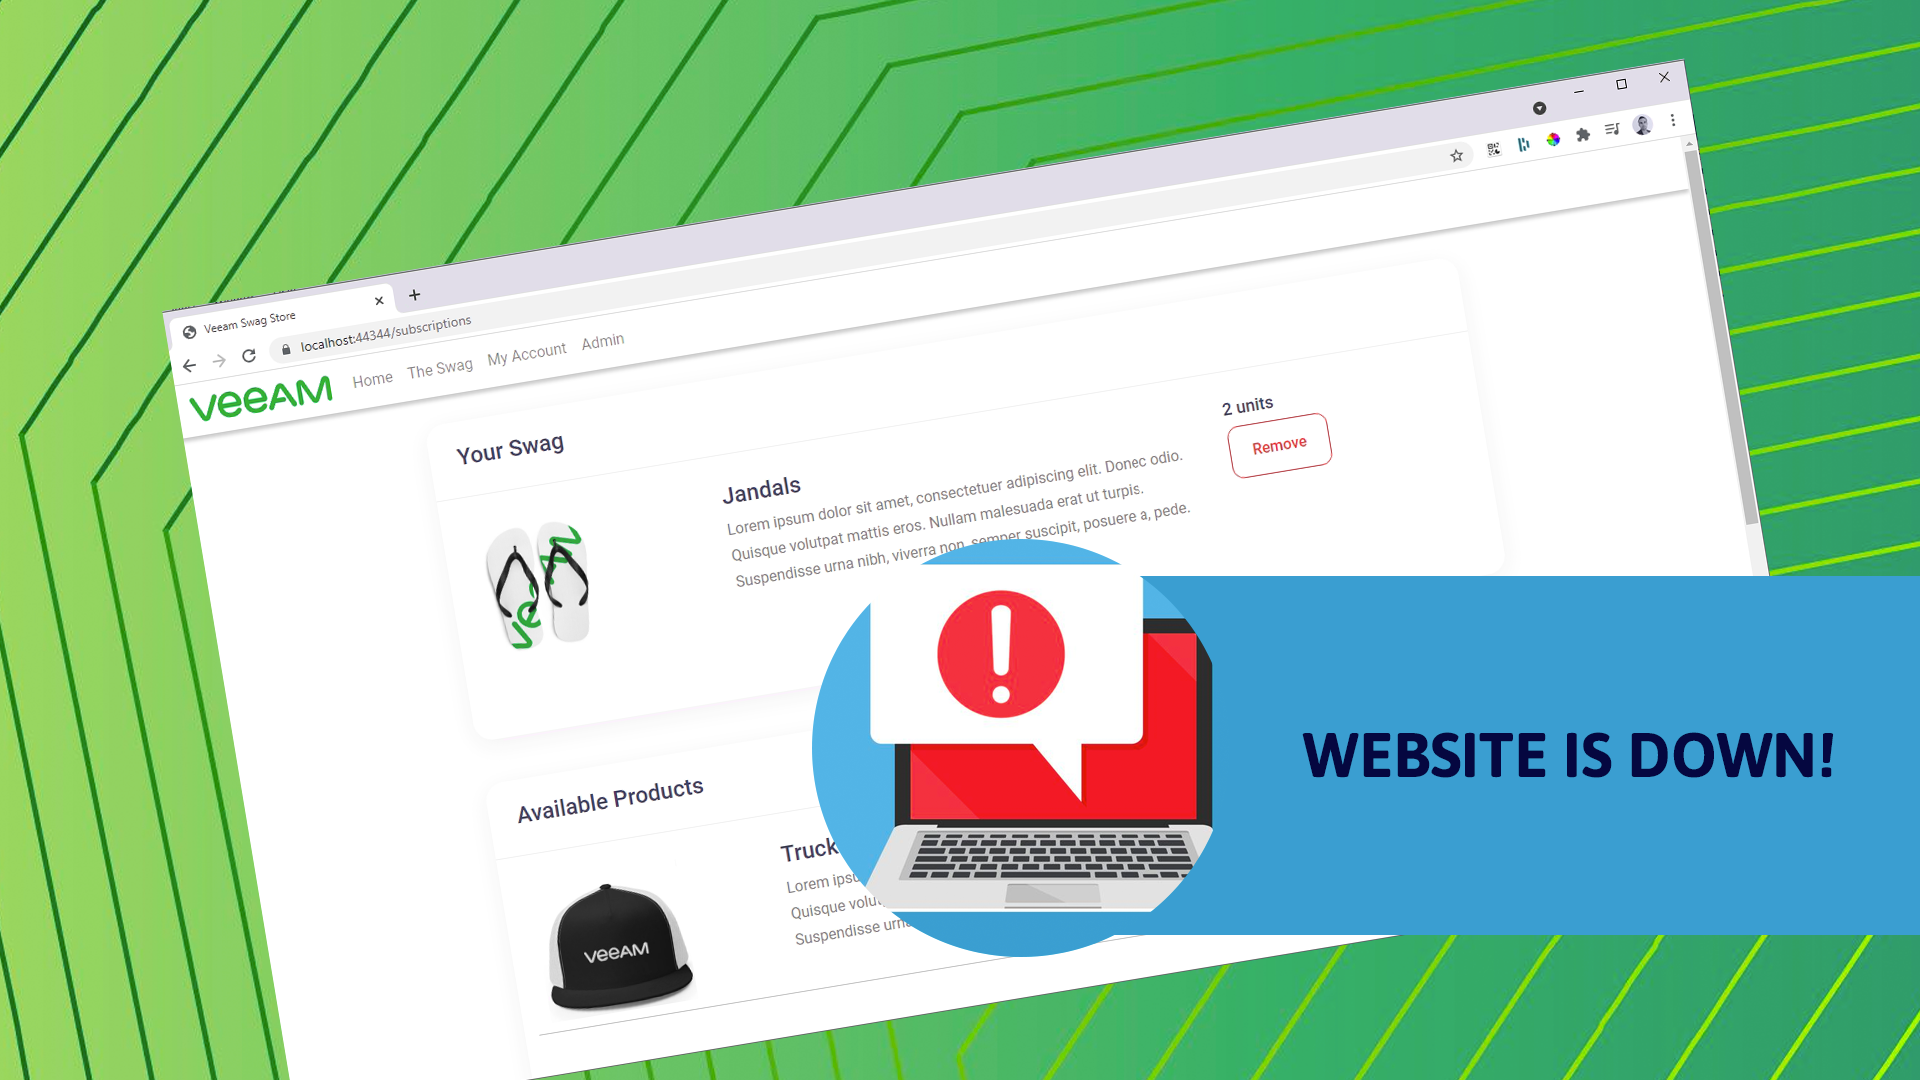 Instant Database Recovery with Veeam - Help the SWAG store is down!